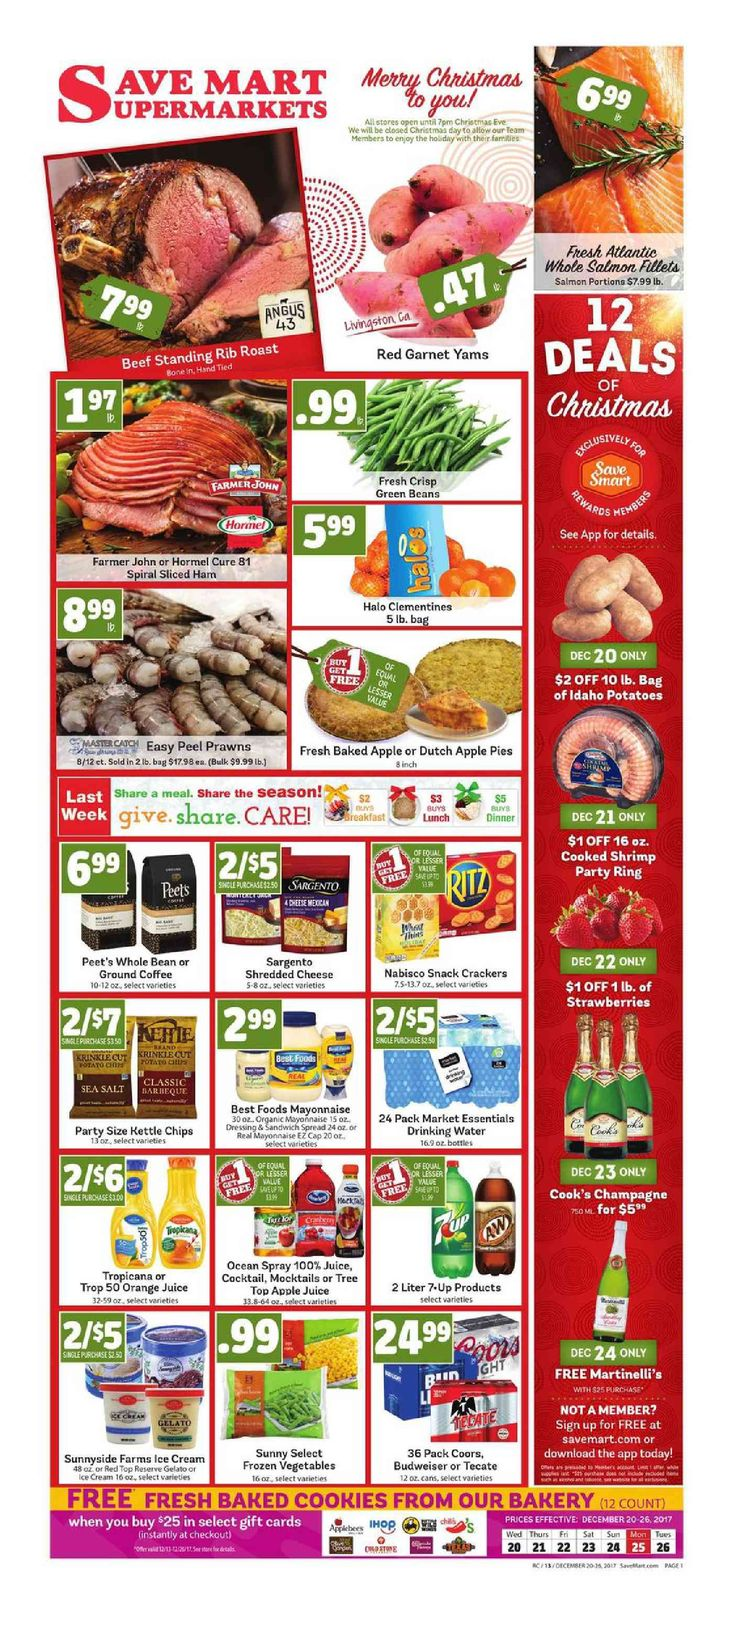 Save Mart Weekly ad December 20 - 26, 2017 - http://www.olcatalog.com/save-mart/save-mart-weekly-ad.html